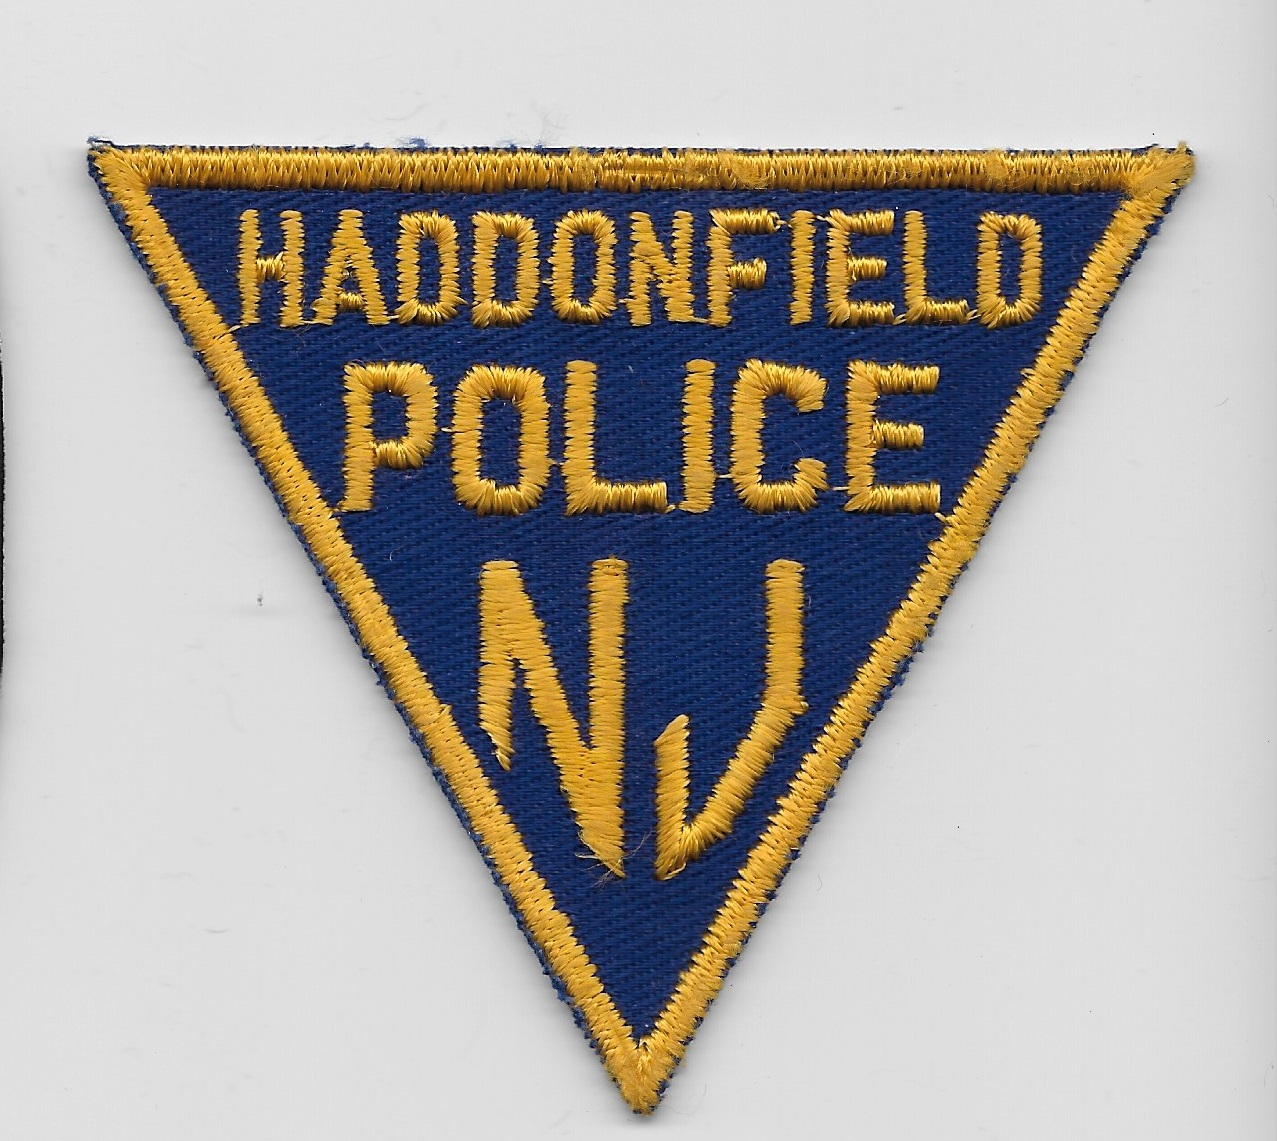 Haddonfield Police NJ